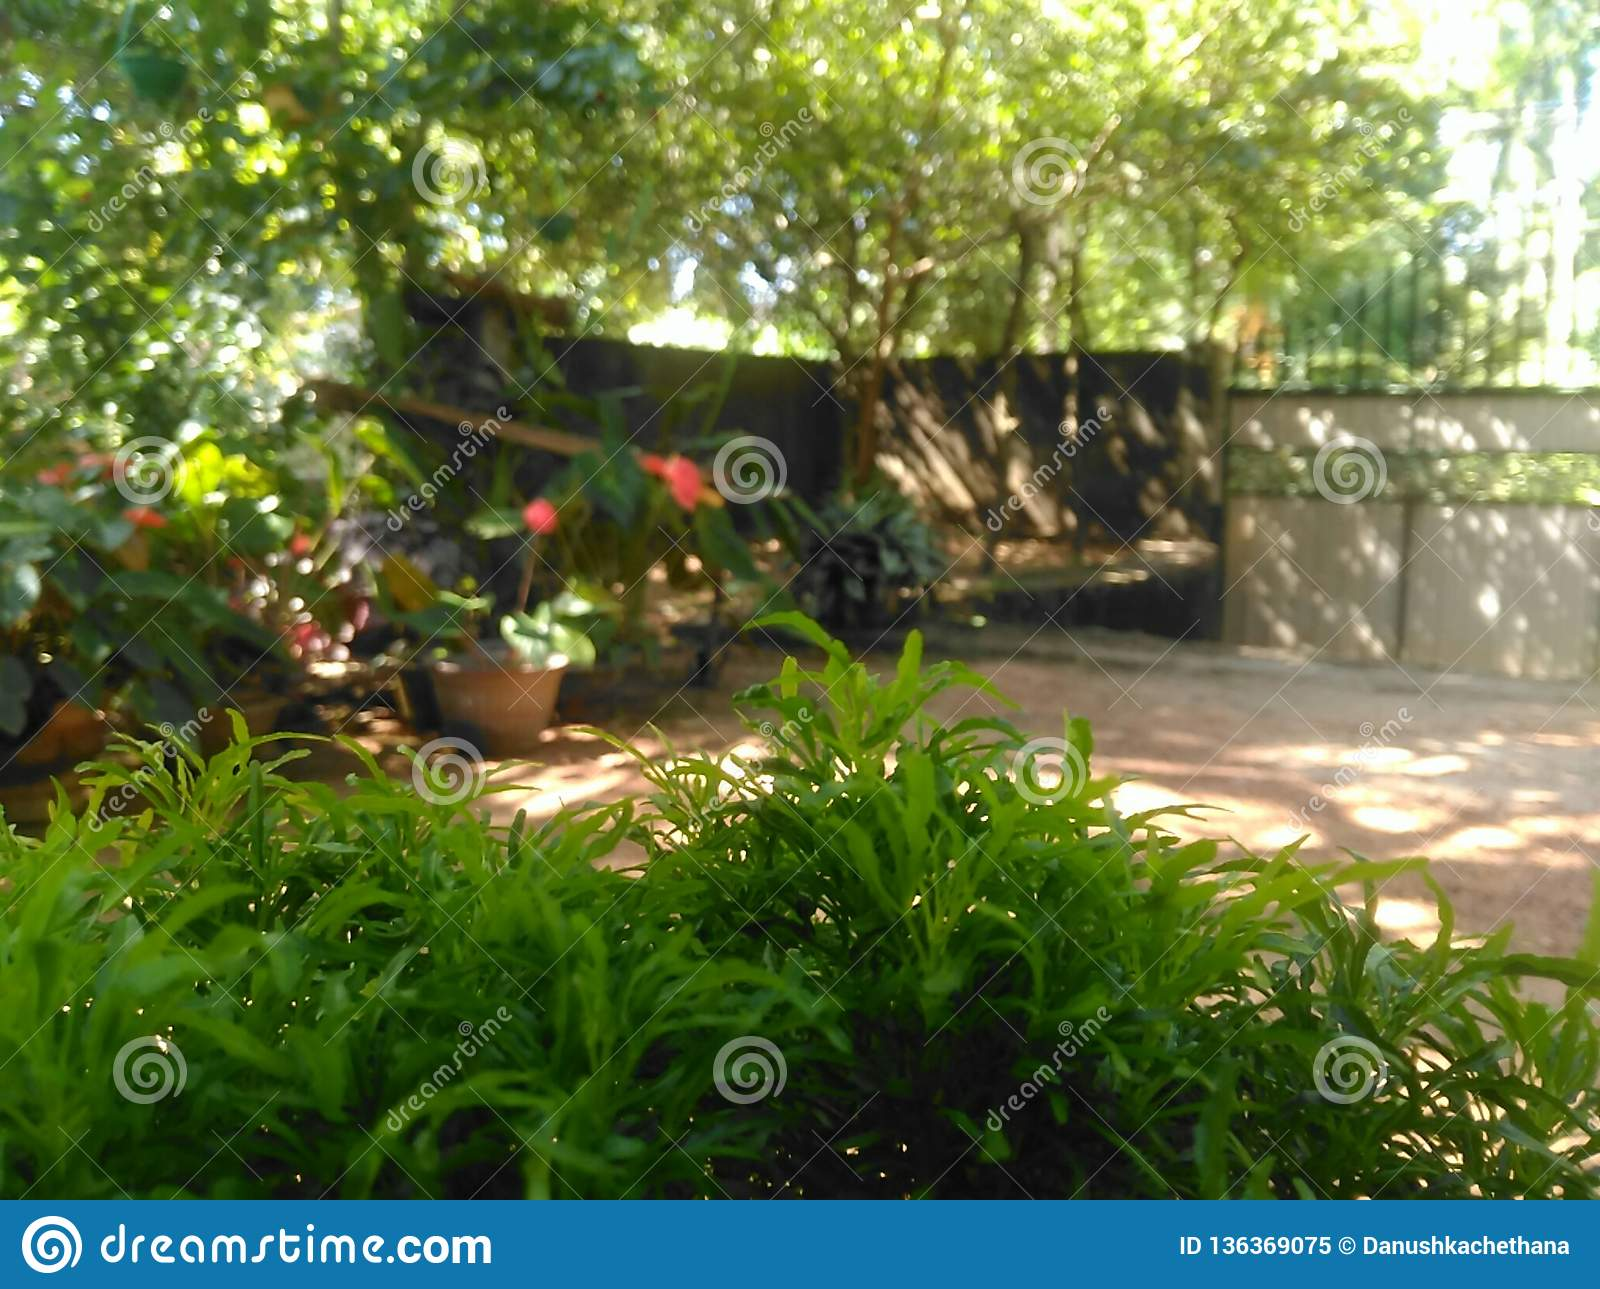 Sri Lanka Beautiful Home Garden Stock Image Image Of Print Nany 136369075